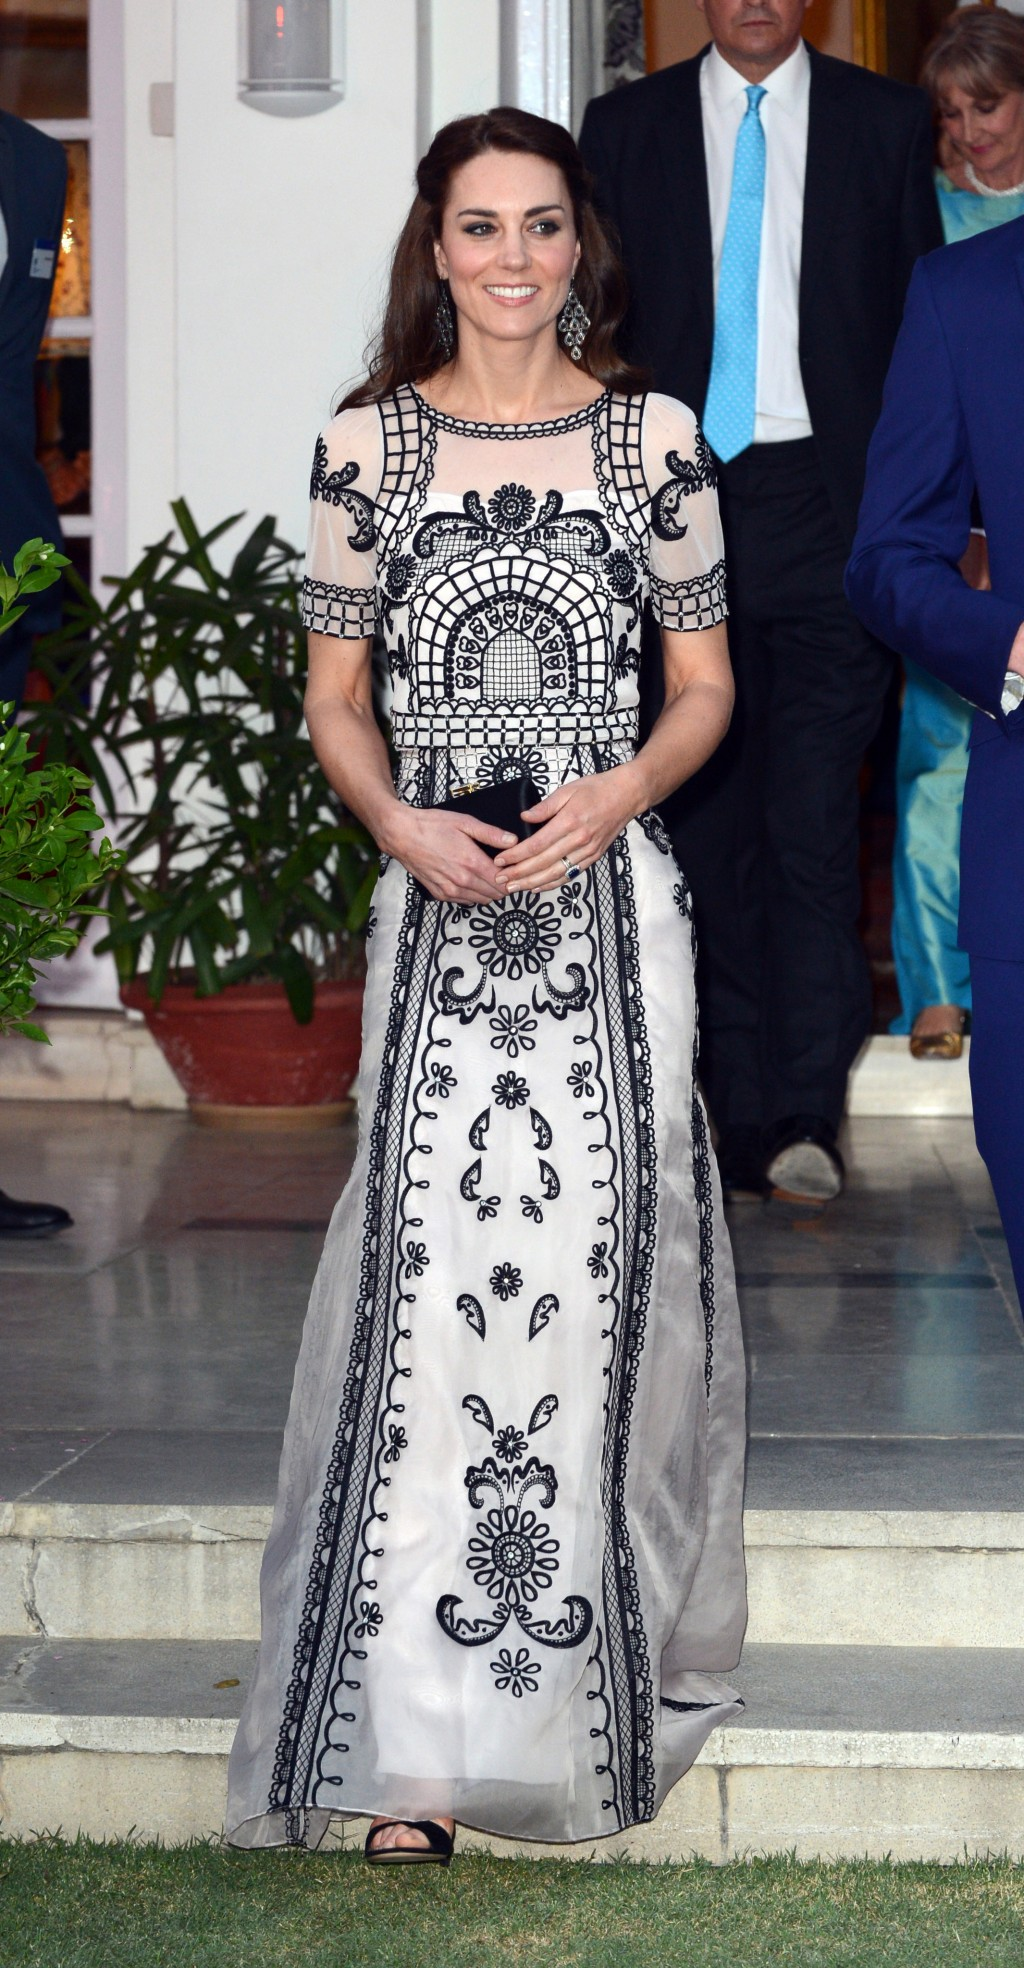 Get the Look of Kate Middleton's Outfits From Her Tour of India